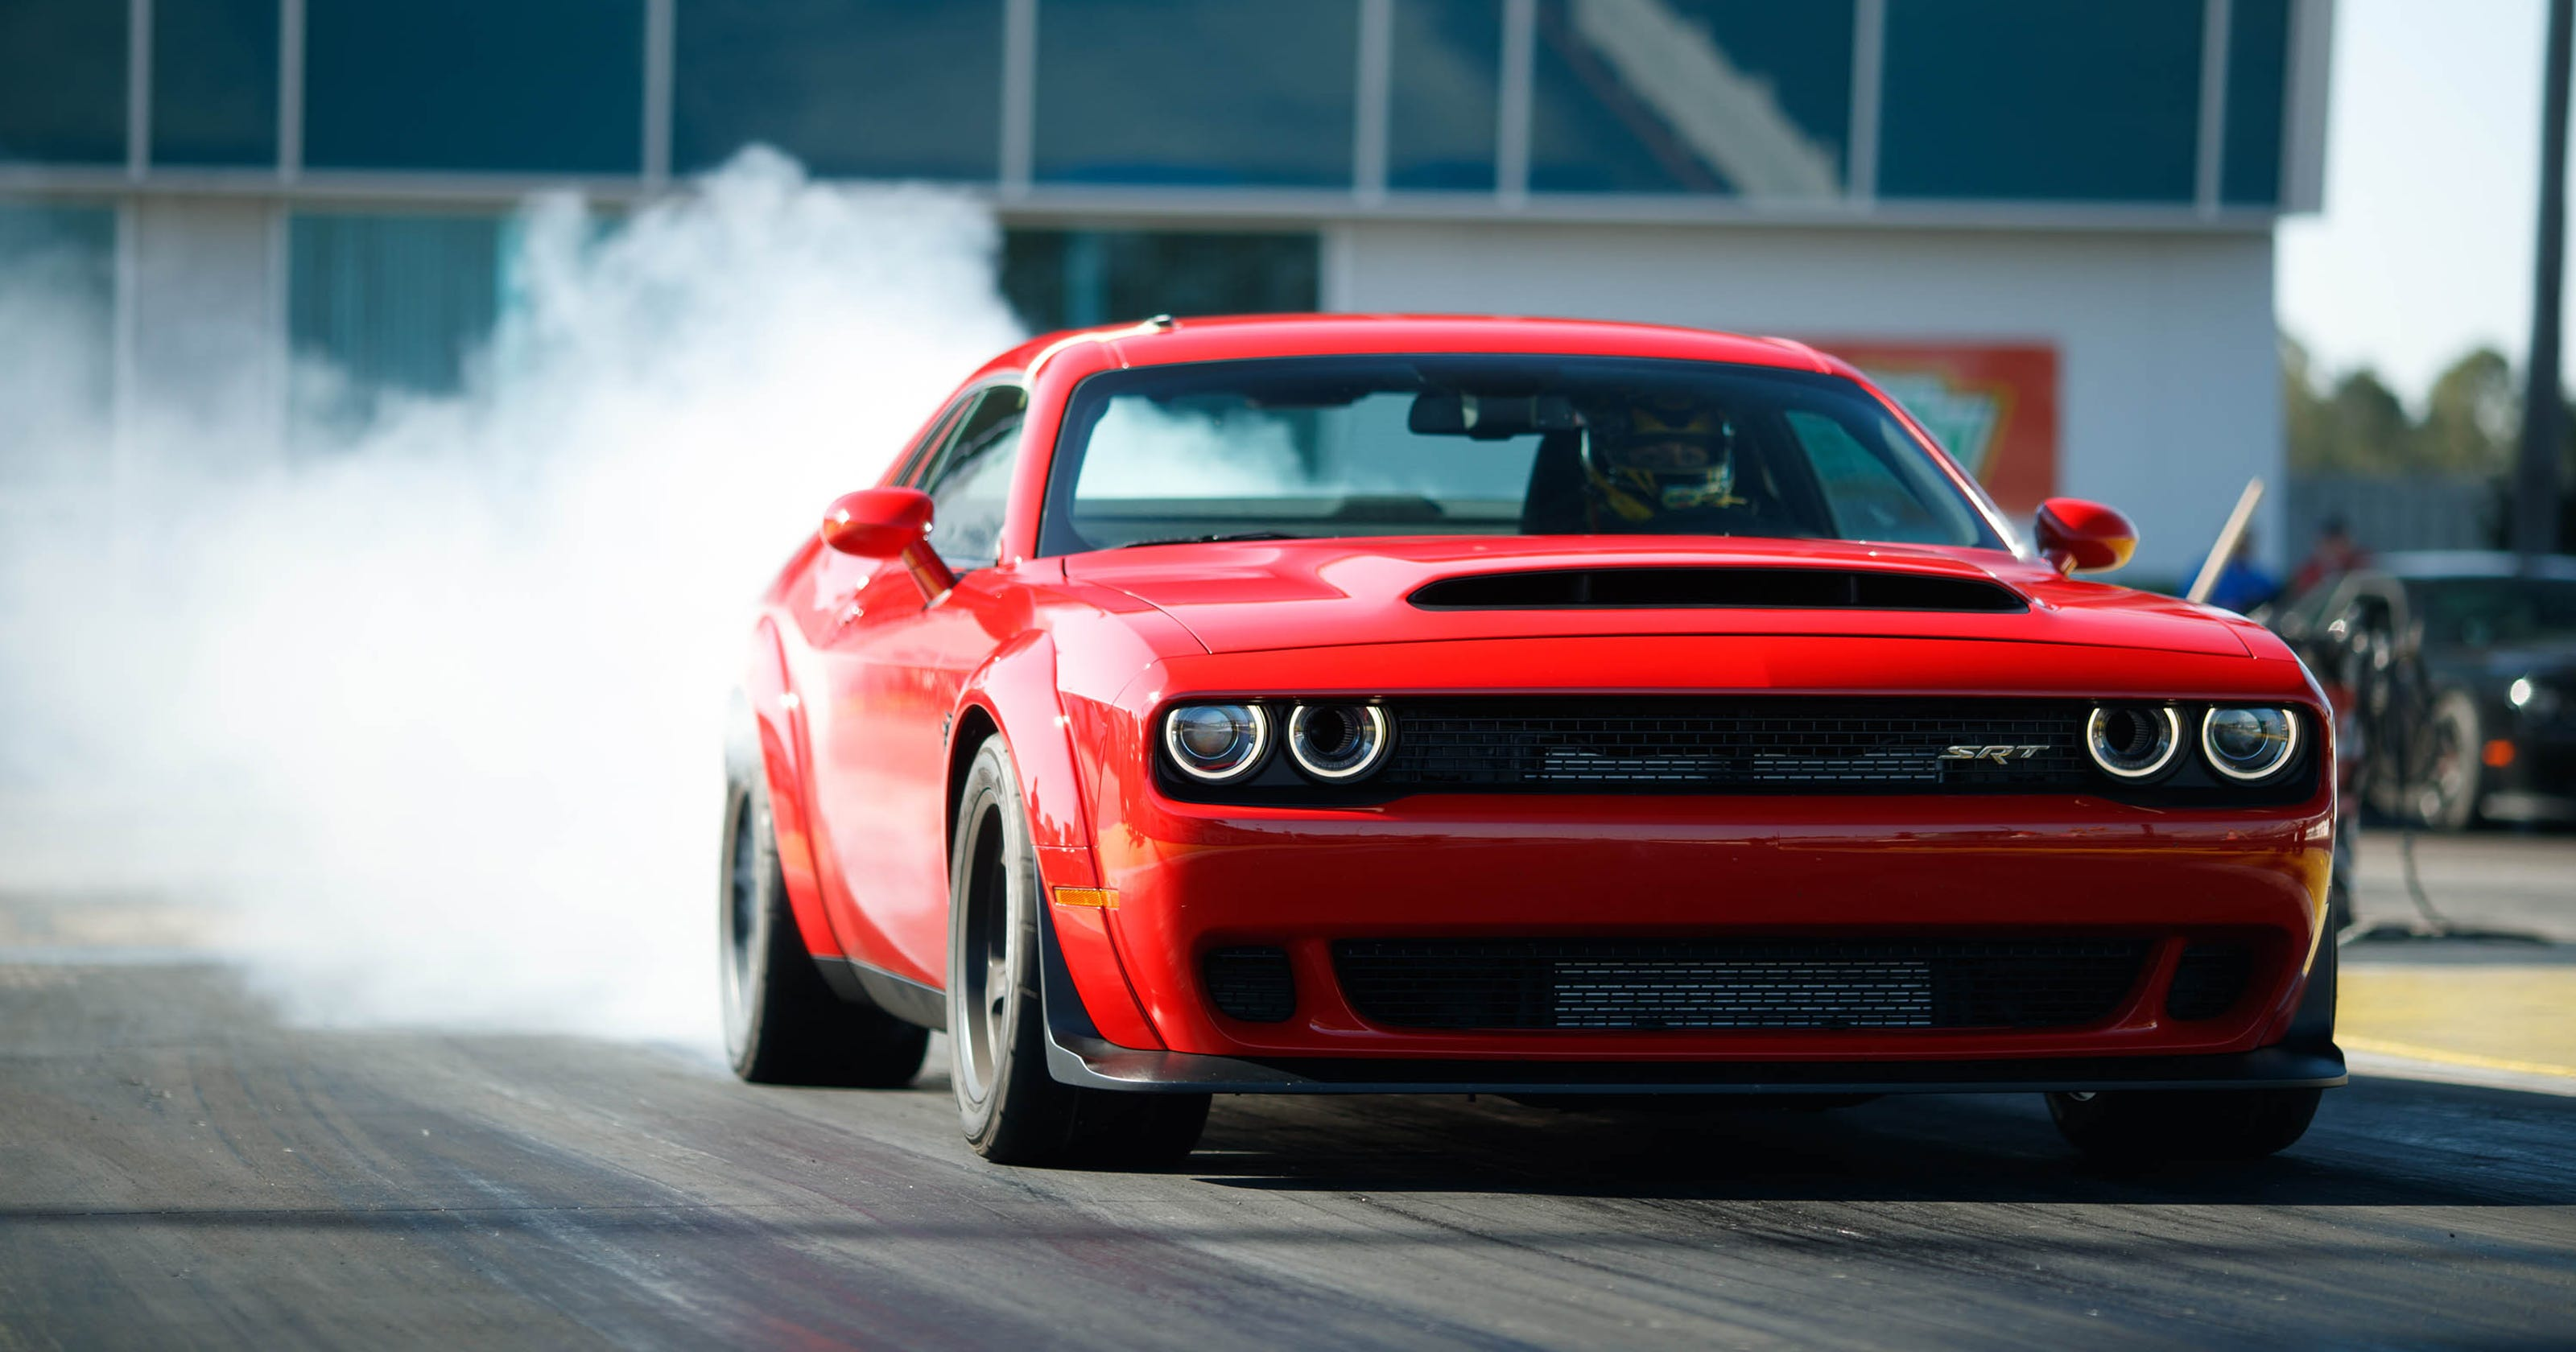 These Specs On The 2018 Dodge Demon Are Ridiculous And Awesome